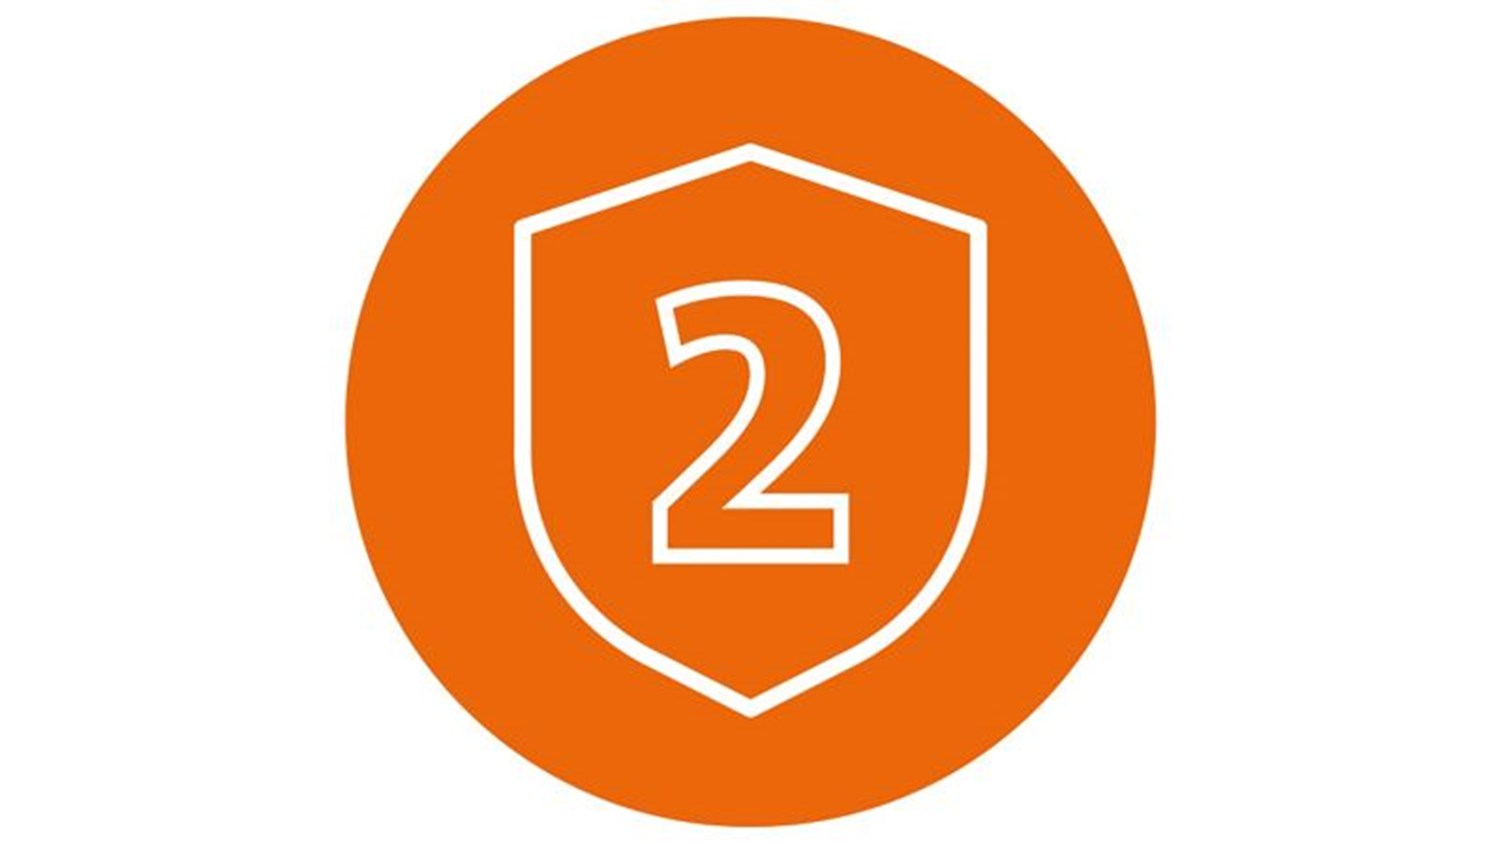 Orange circle with white icon of a two in a shield